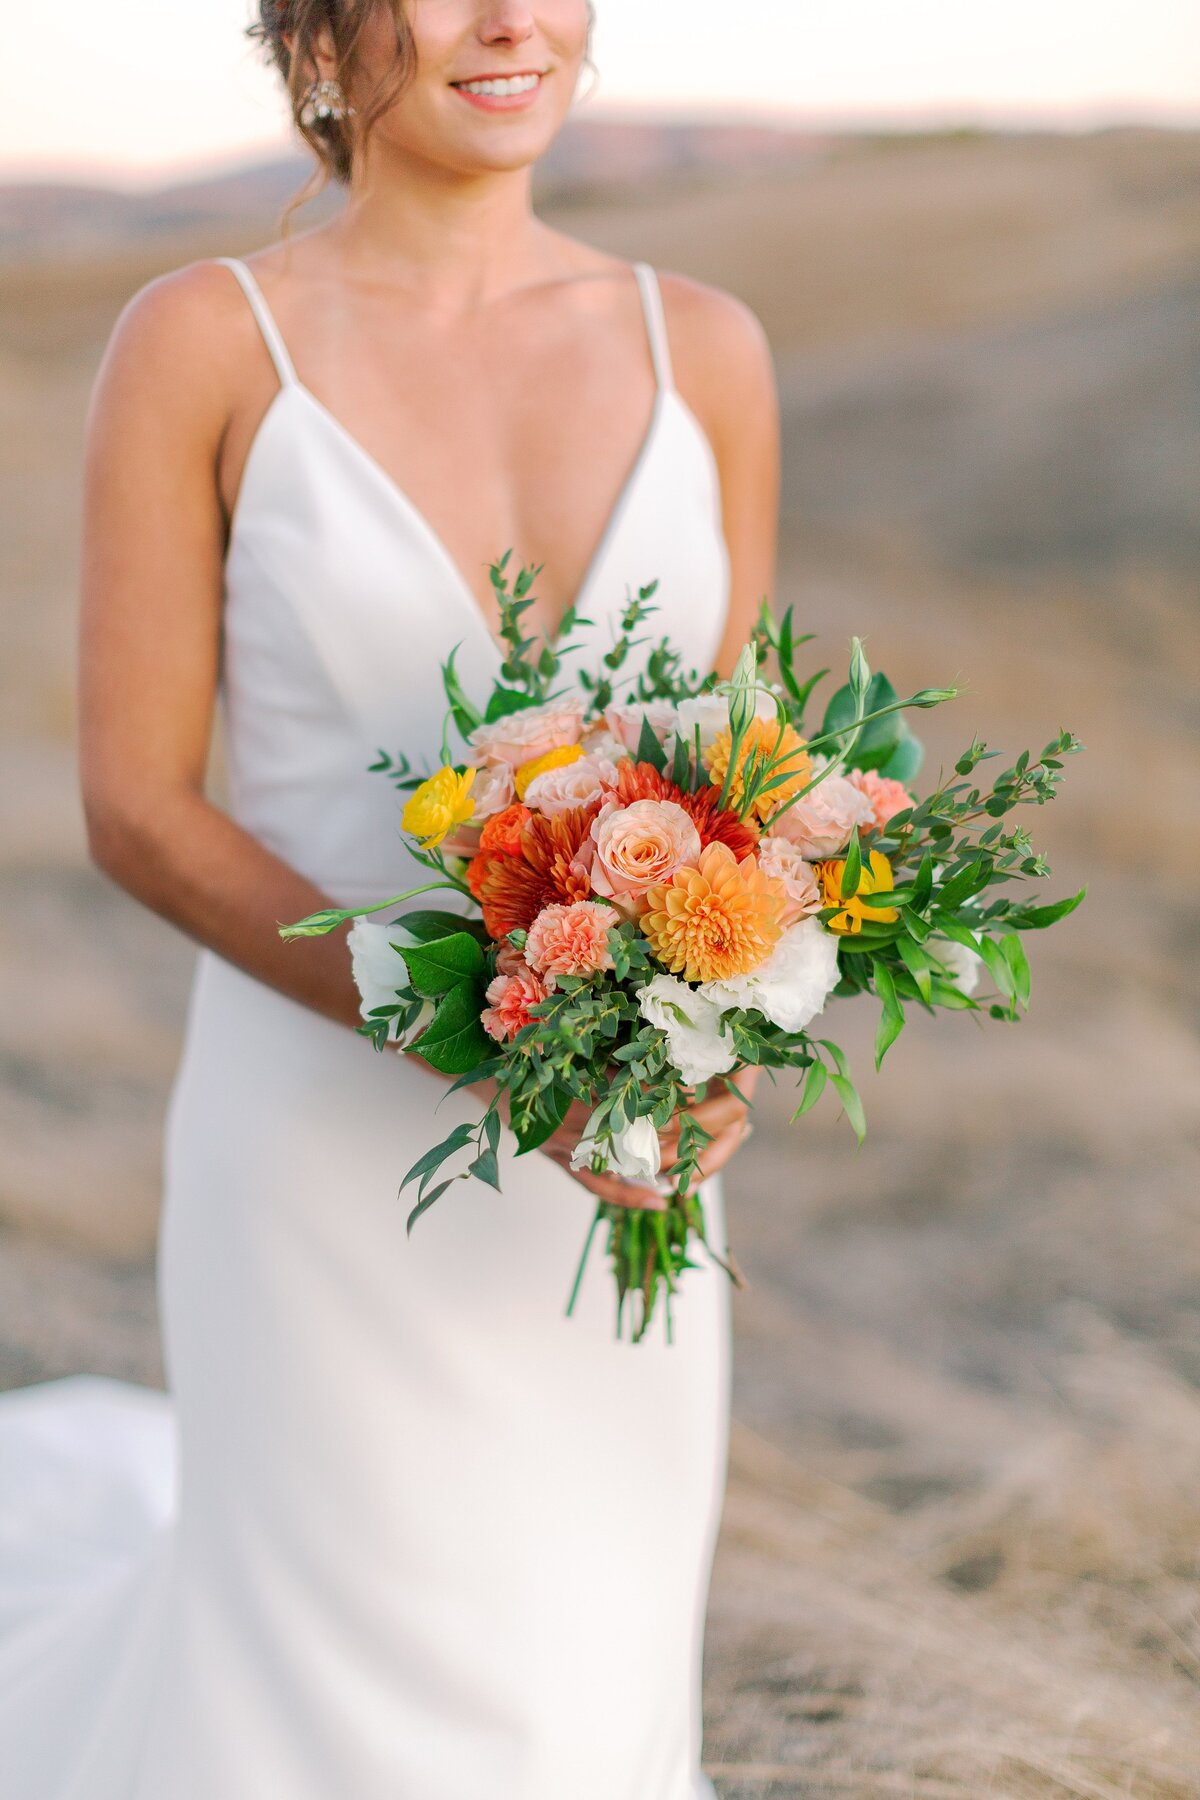 20191020 Modern Elegance Wedding Styled Shoot at Three Steves Winery Livermore_Bethany Picone Photography-233_WEB